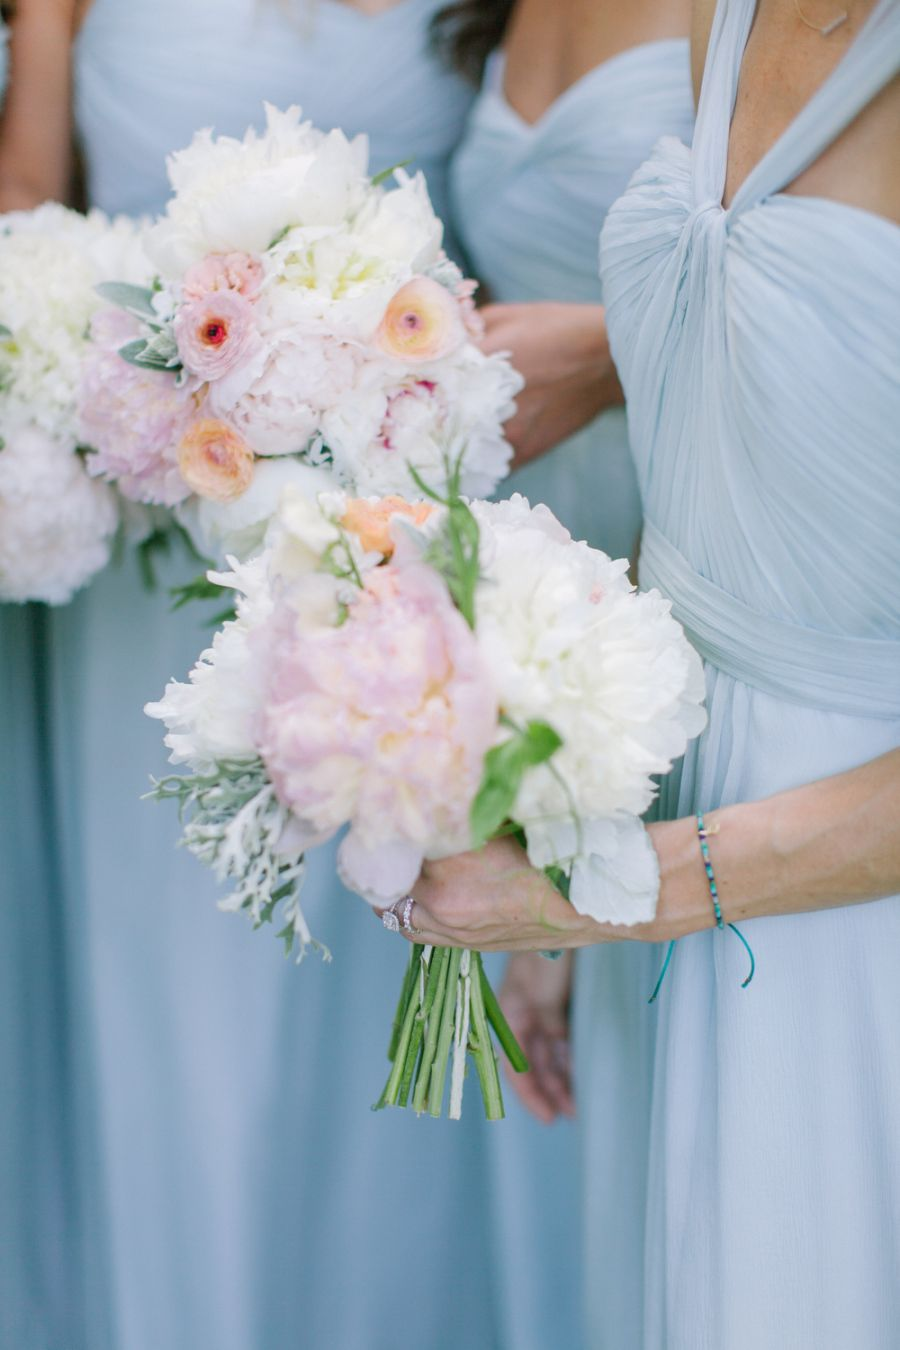 When classic blue china inspires your wedding day bouquet